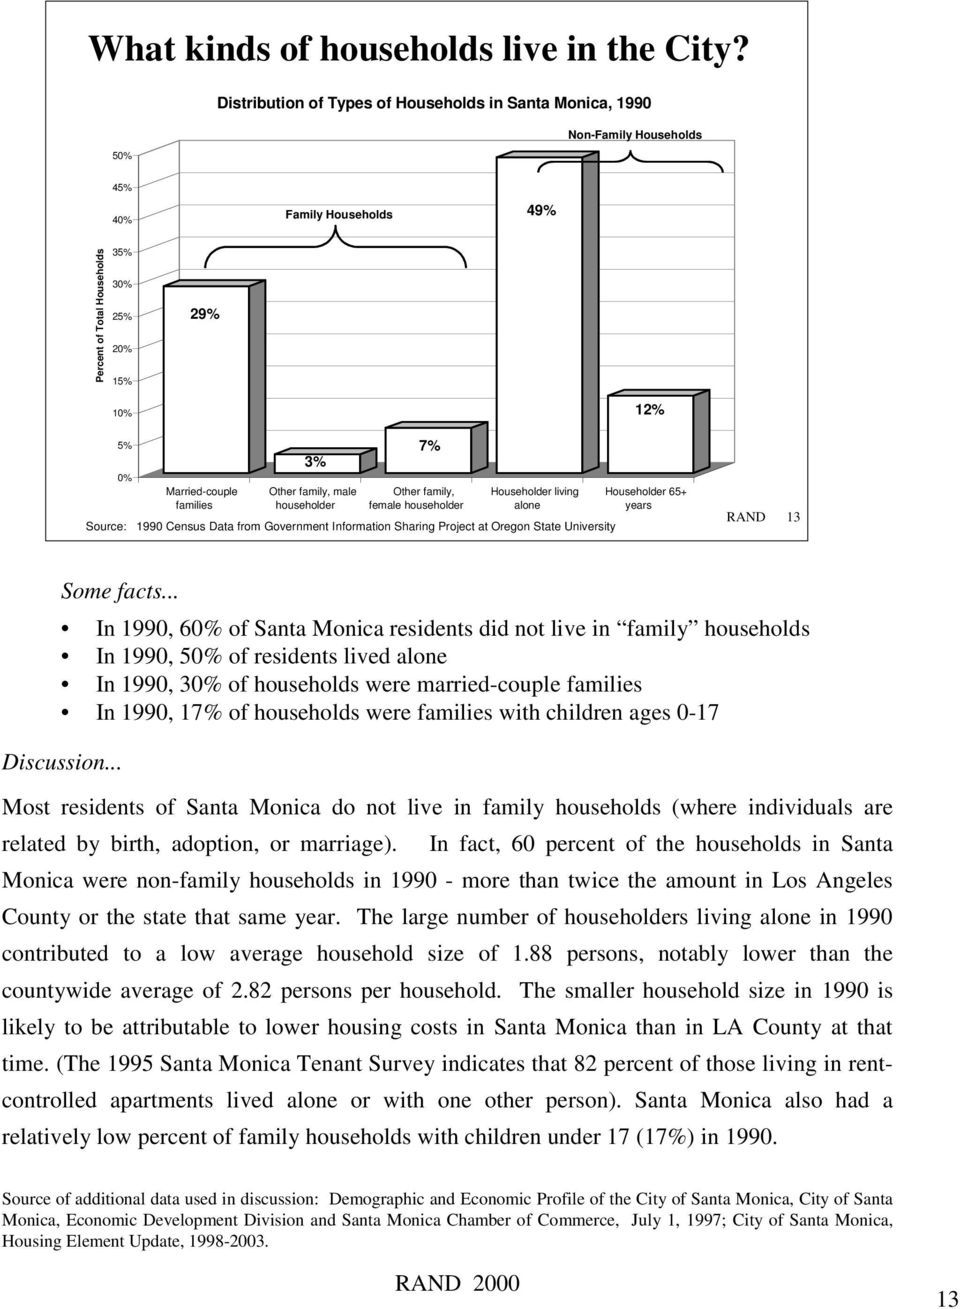 families 3% Other family, male householder 7% Other family, female householder Householder living alone Source: 1990 Census Data from Government Information Sharing Project at Oregon State University